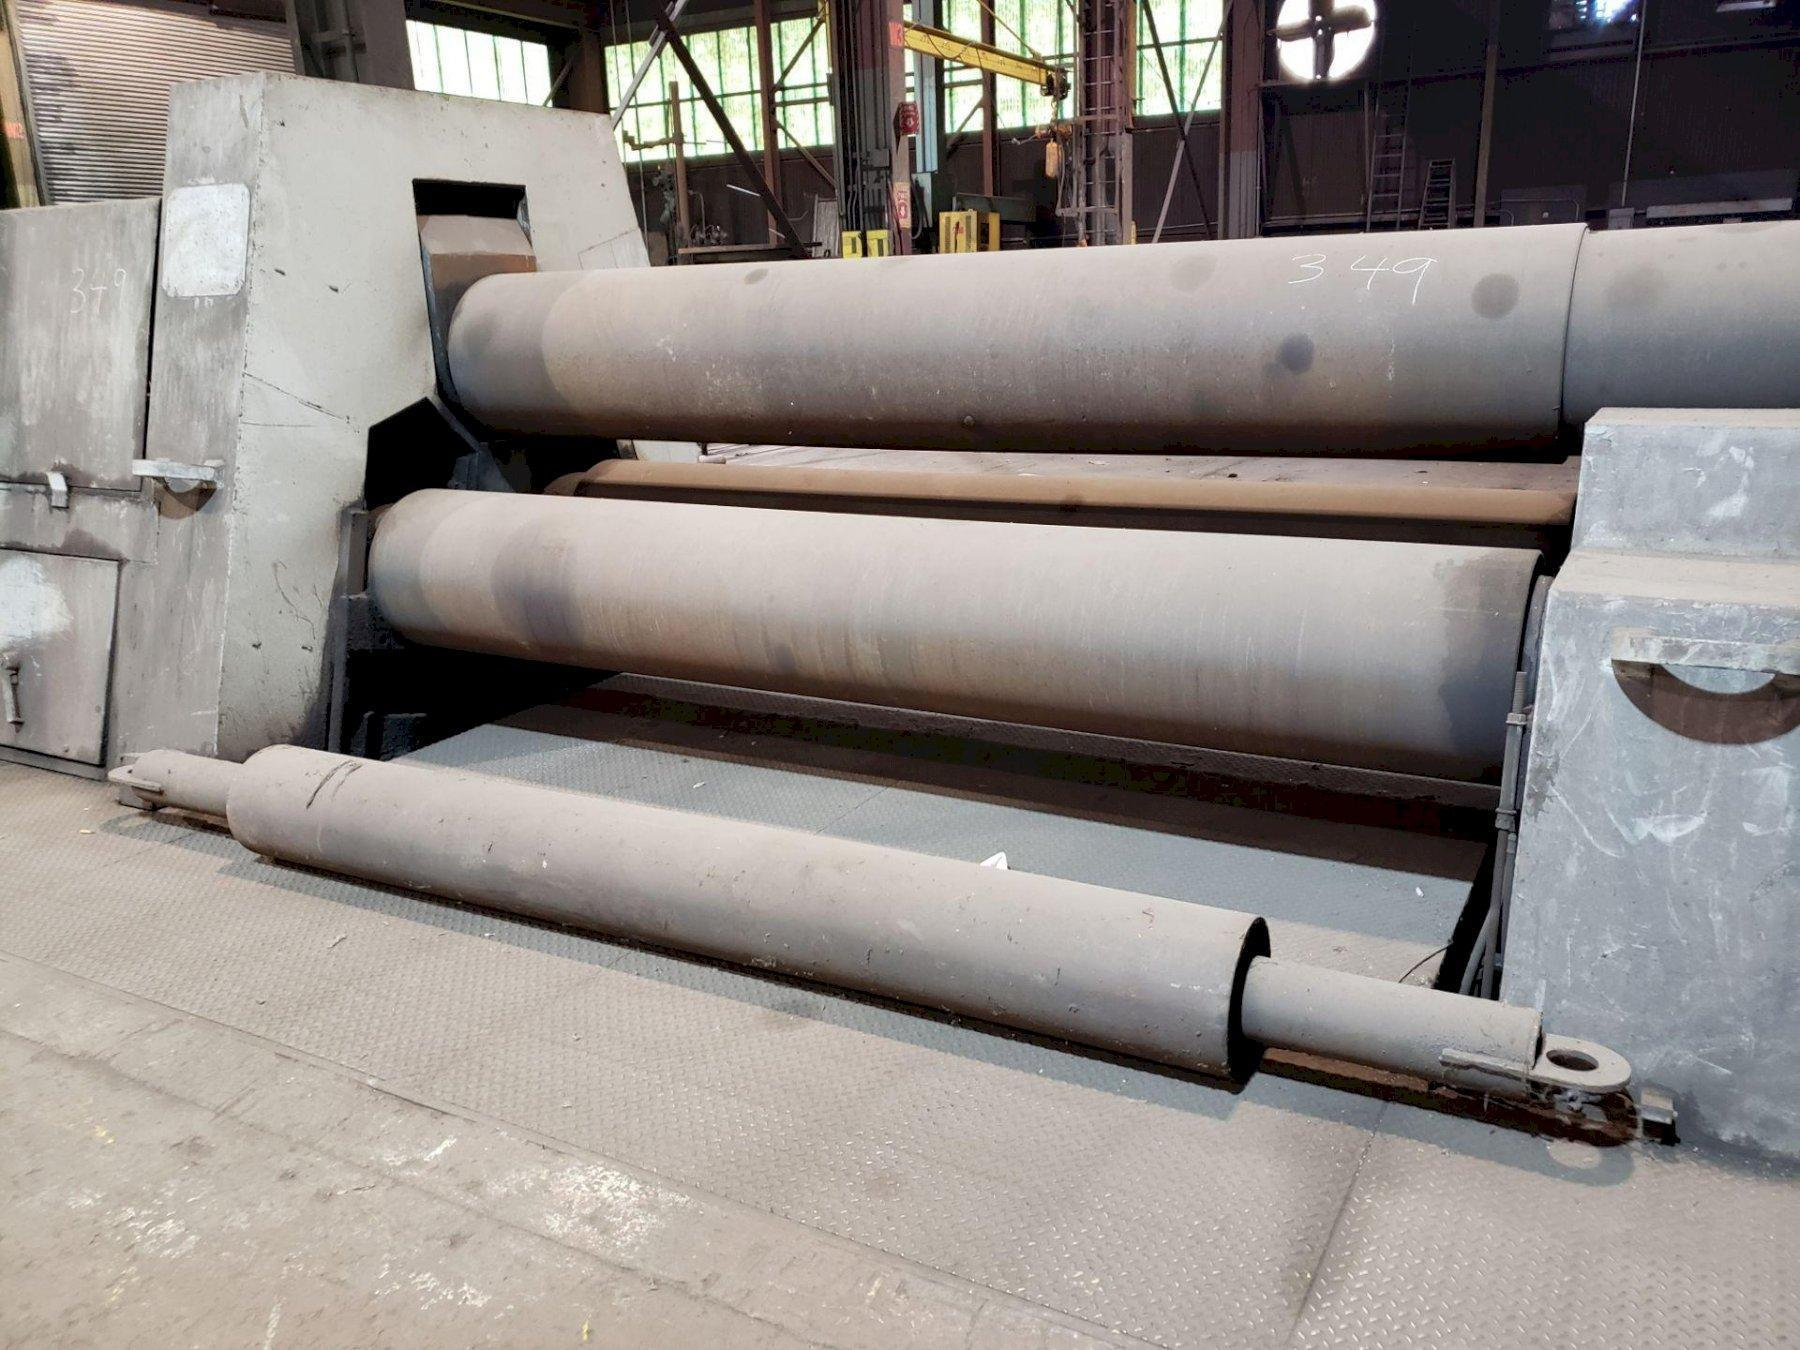 "10' X 1.5"" SERTOM RIMI 3016 3 ROLL HYDRAULIC DOUBLE INITIAL PINCH PLATE ROLL. STOCK # 1058920"